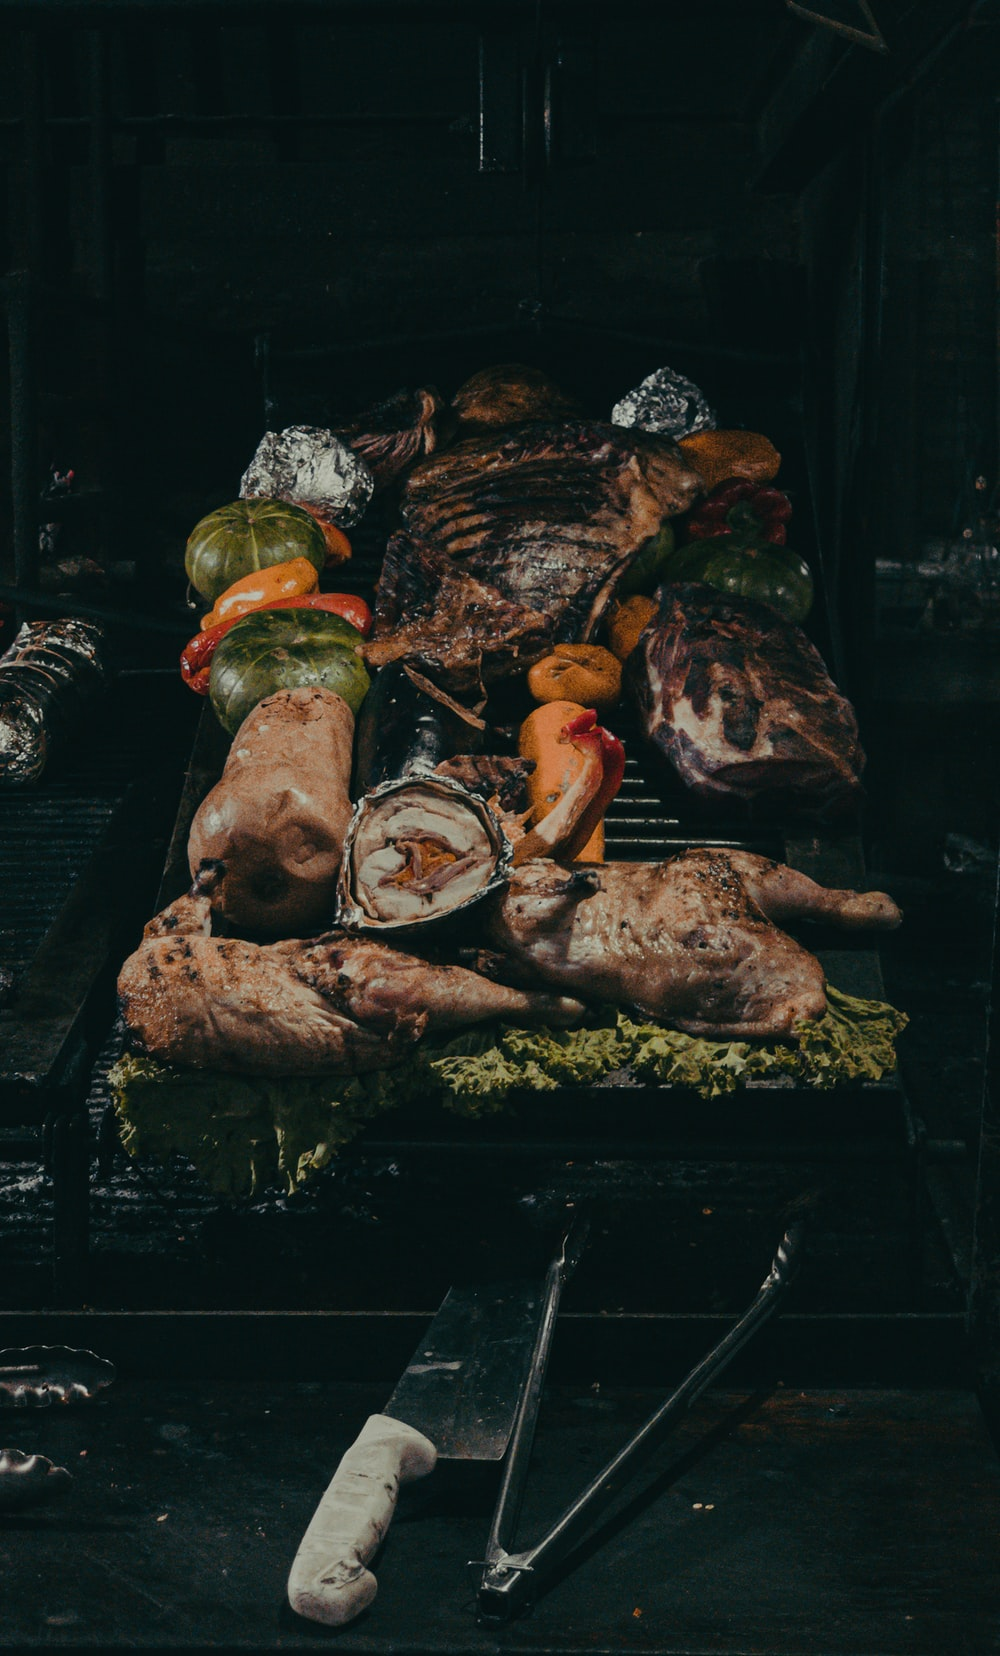 grilled meat on black charcoal grill